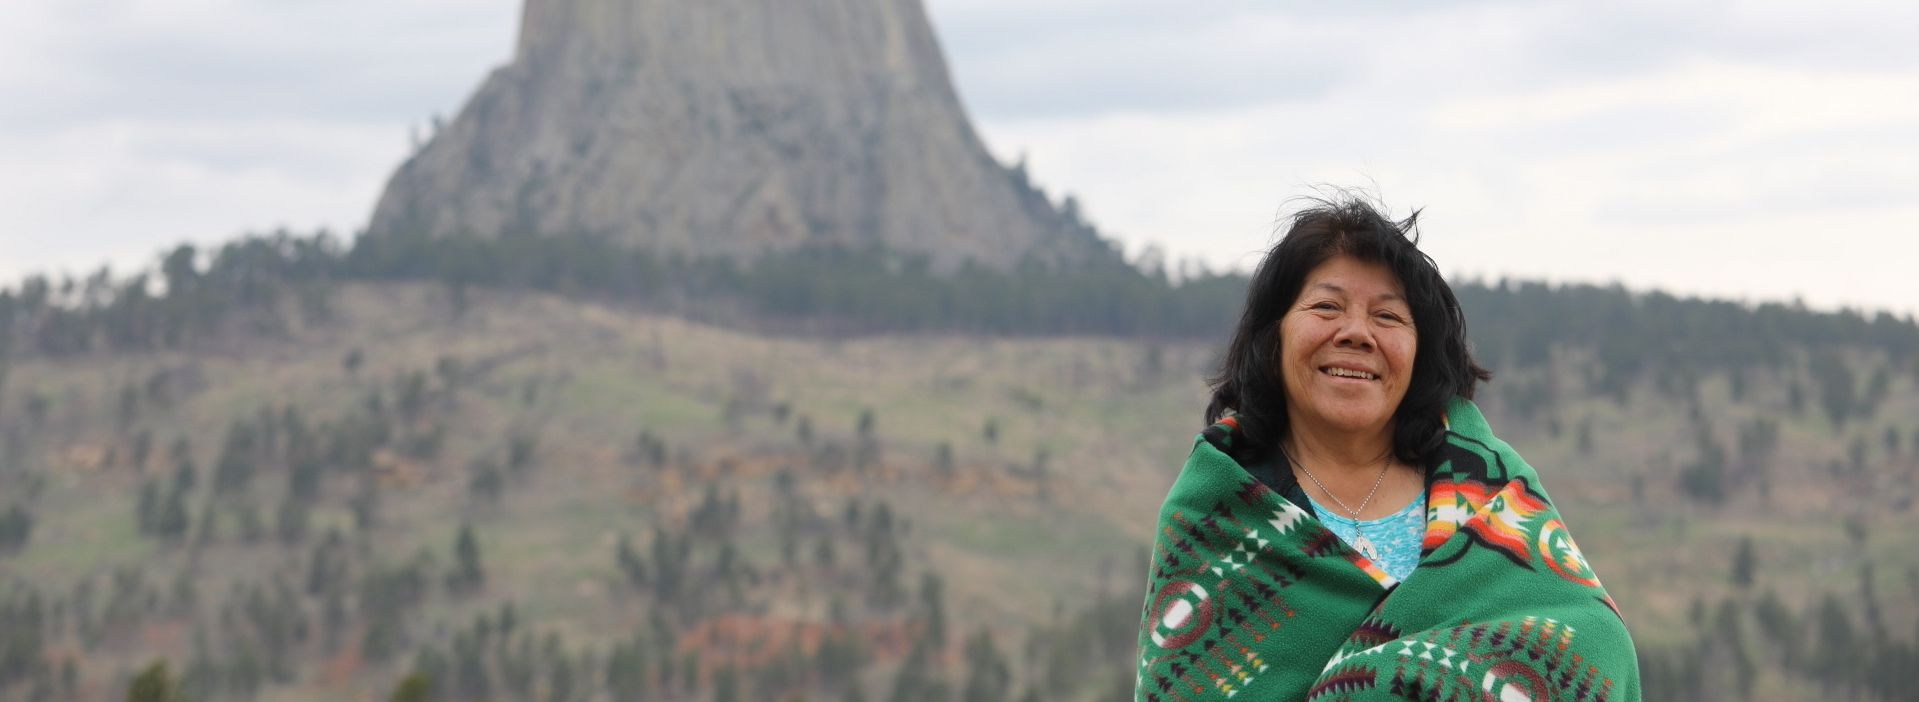 Indigenous woman wearing a blanket and smiling in front of the Devil's Tower natural monument in Wyoming